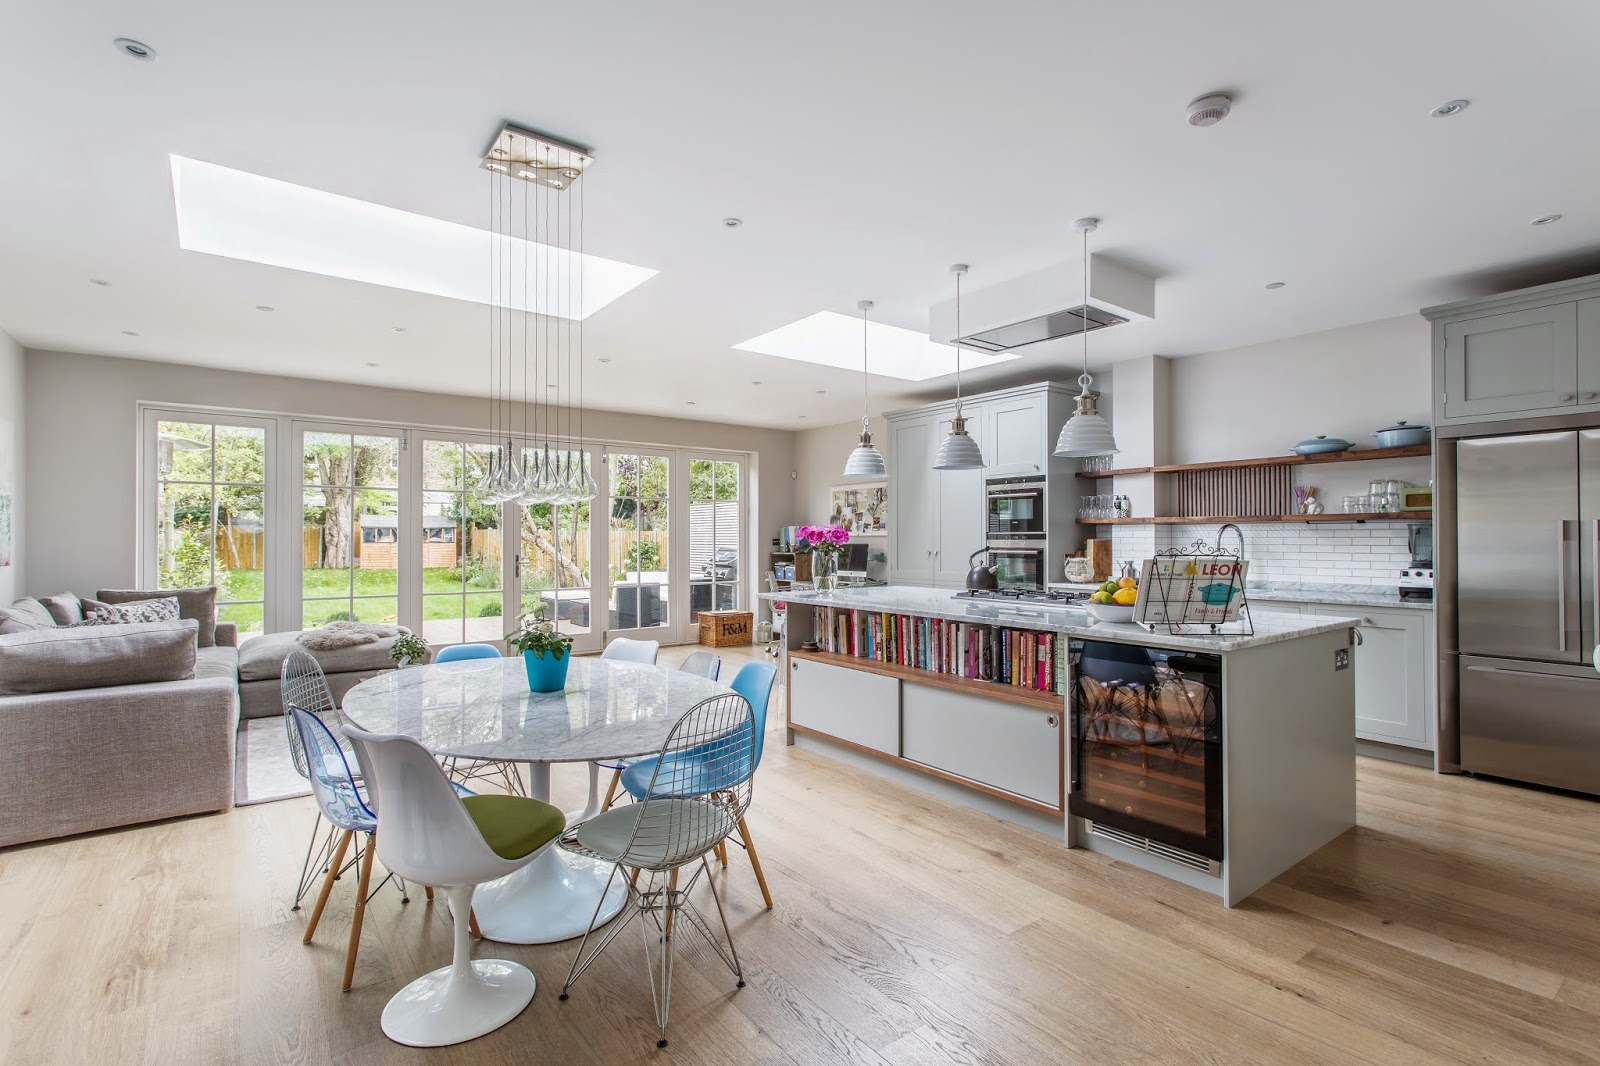 kitchen design south west london home laura butler madden kitchen design south west london home